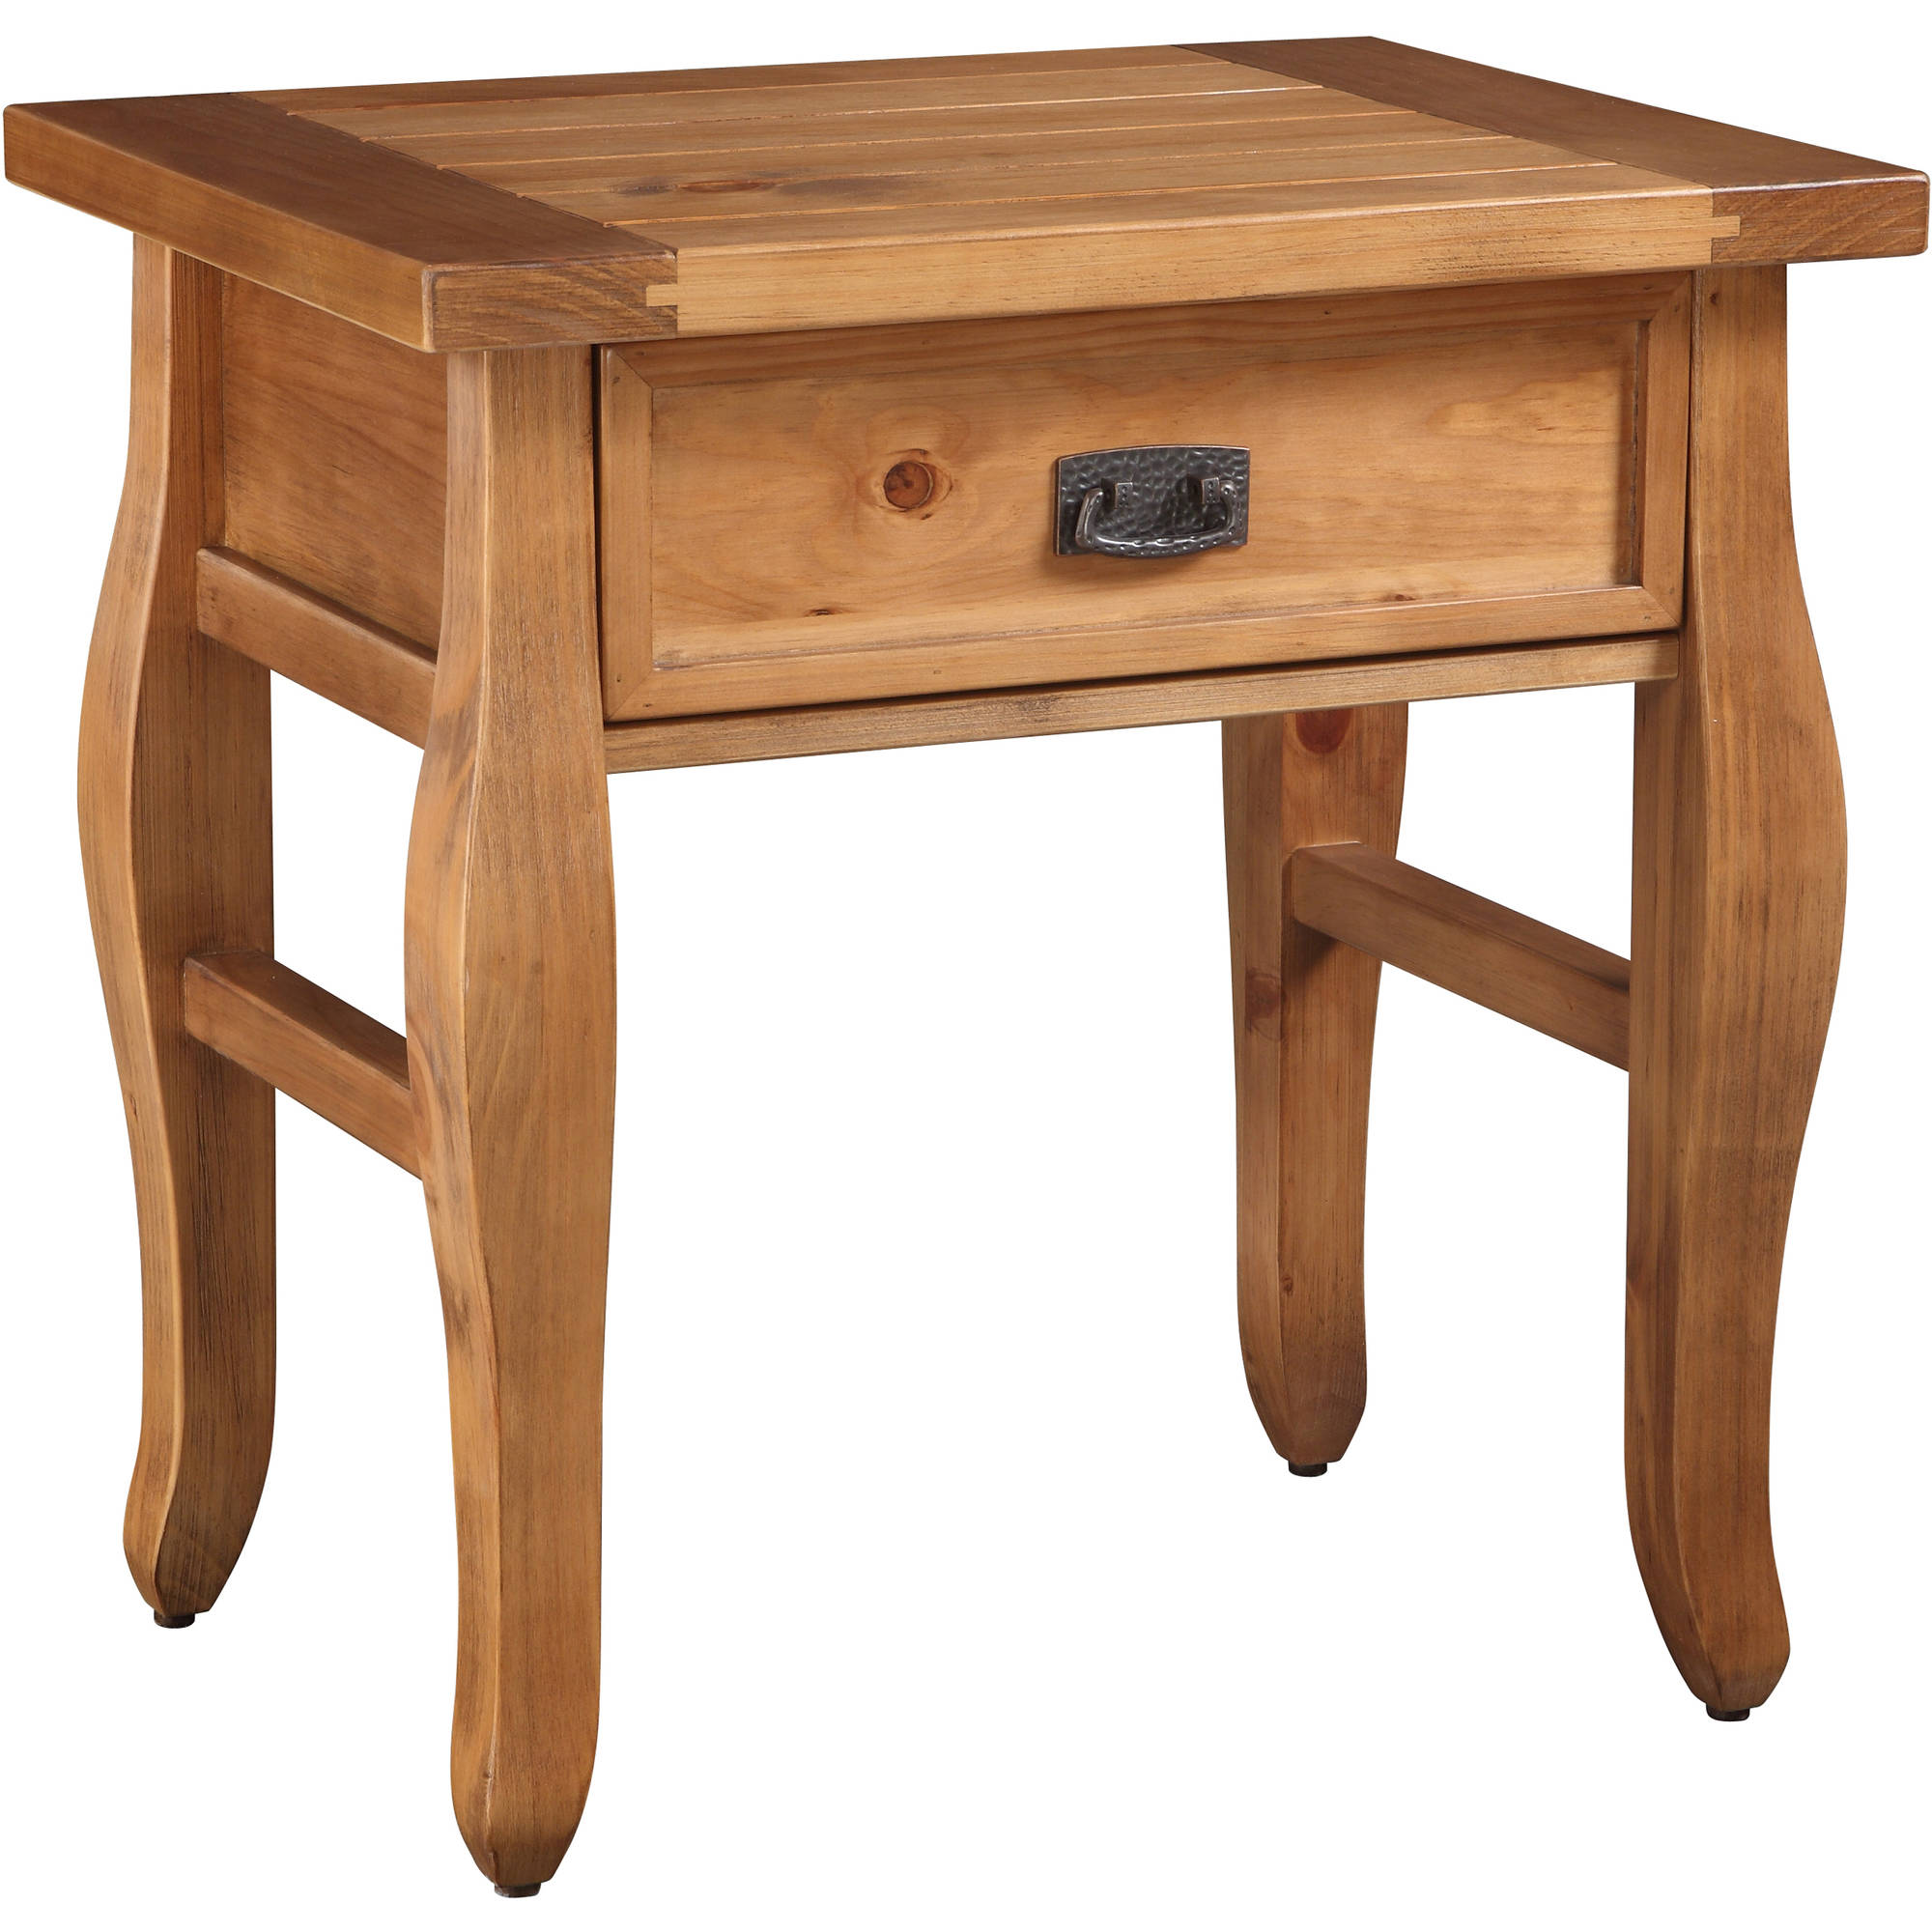 Linon Santa Fe End Table, Antique Finish, 24 inches Tall - Walmart